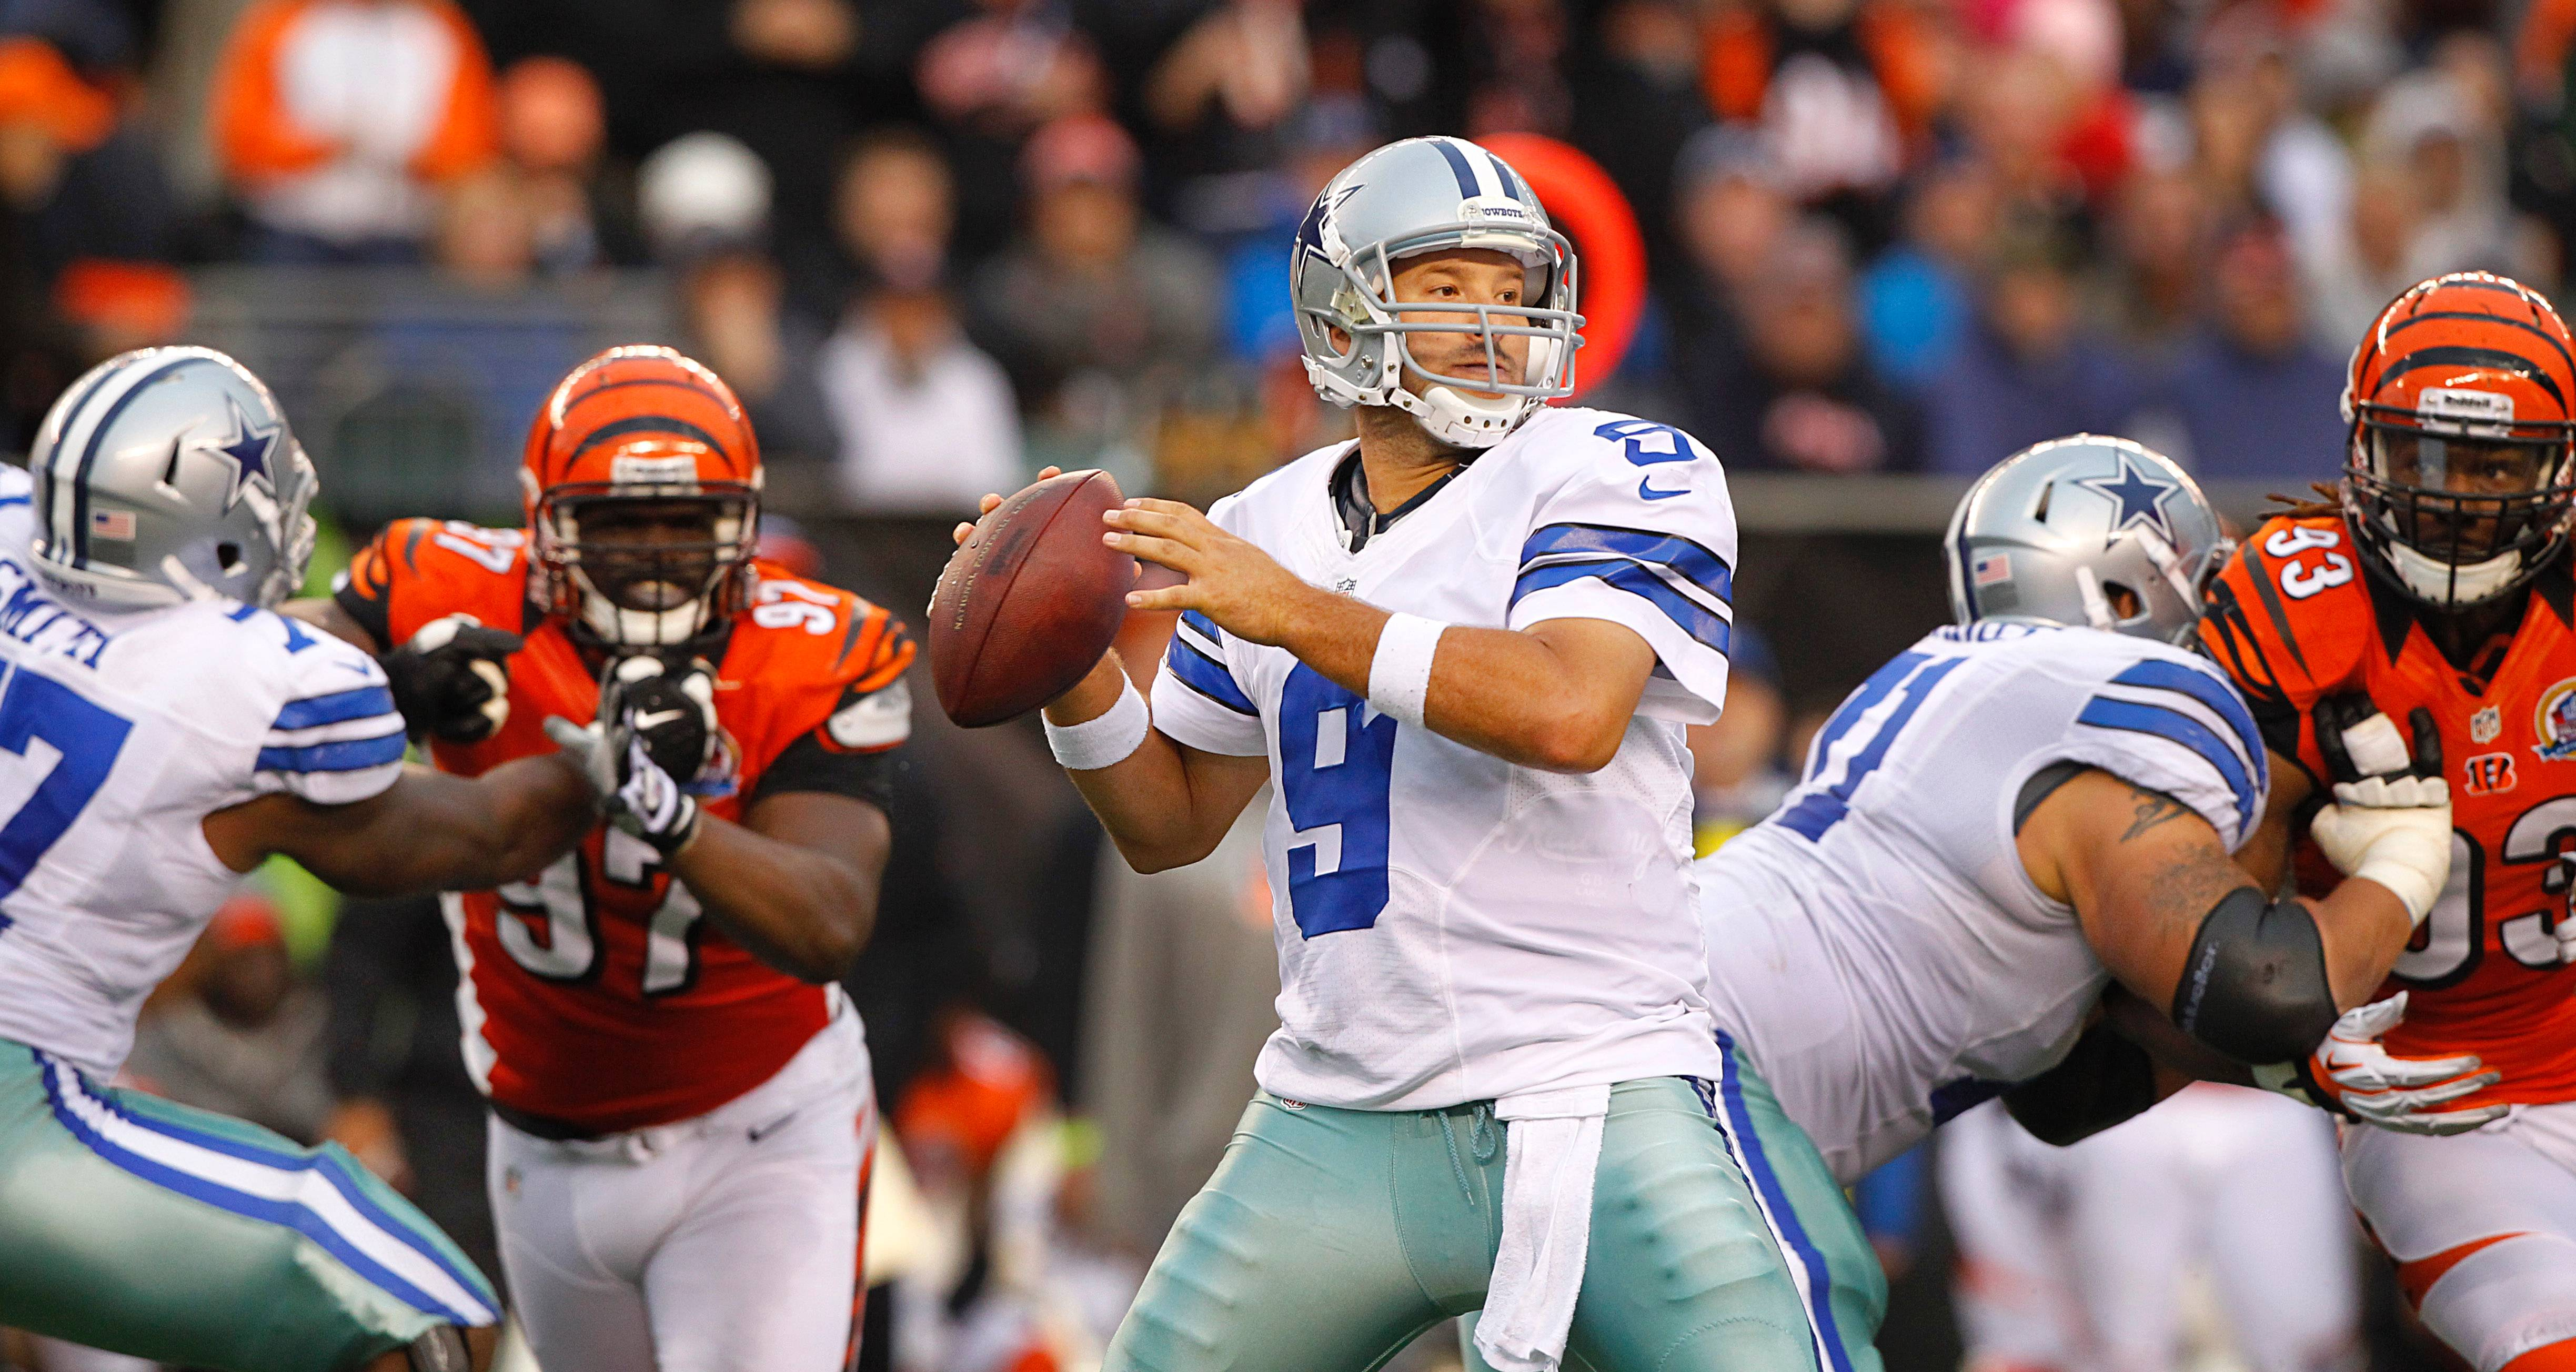 The Dallas Cowboys open the preseason with a visit to Levis Stadium as they take on the San Francisco 49ers